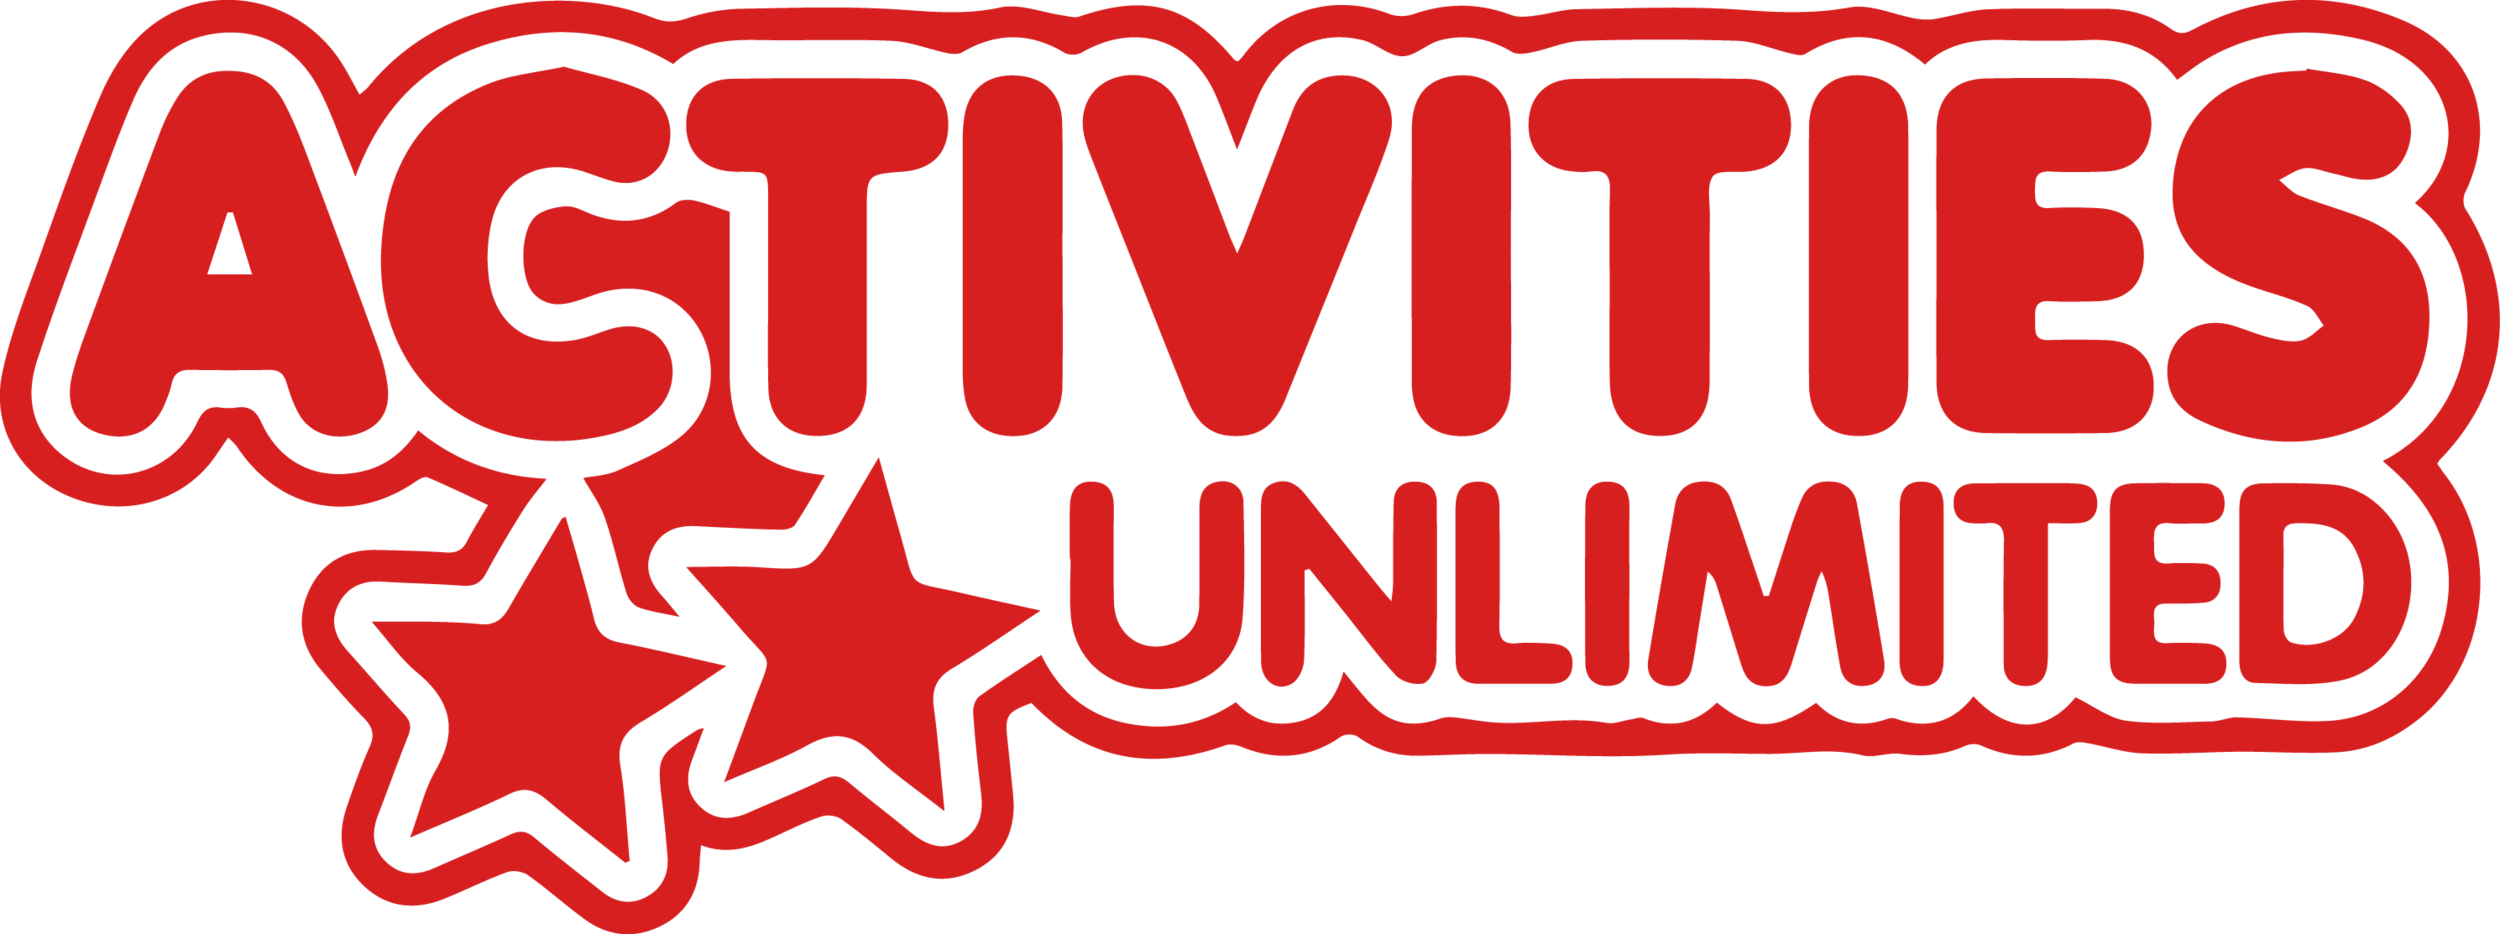 Activities Unlimited Logo.png